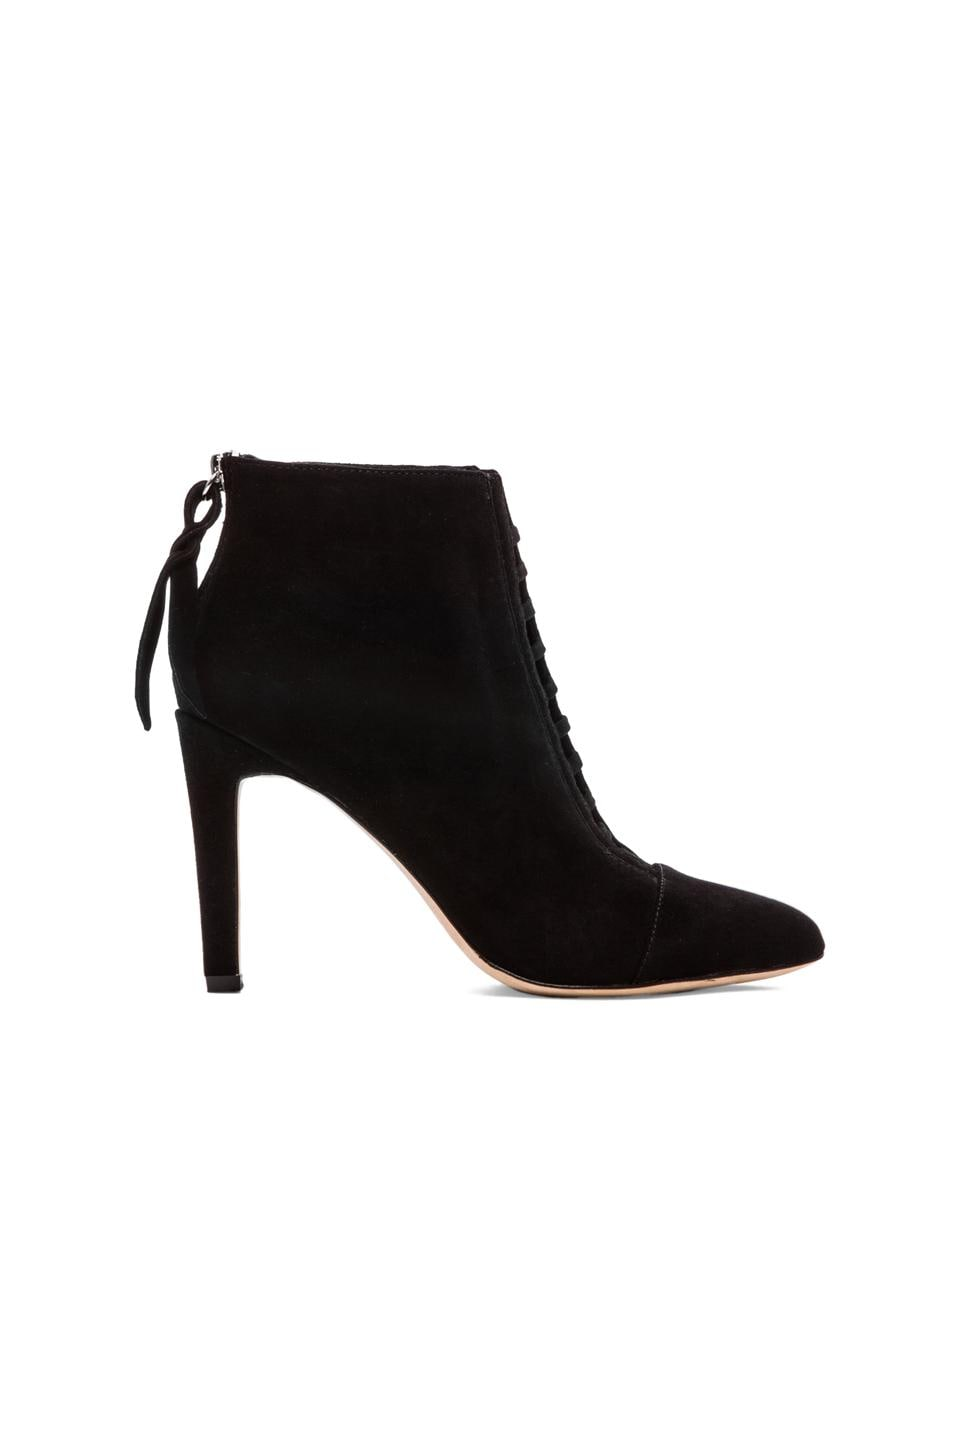 Twelfth Street By Cynthia Vincent Devon Suede Bootie in Black